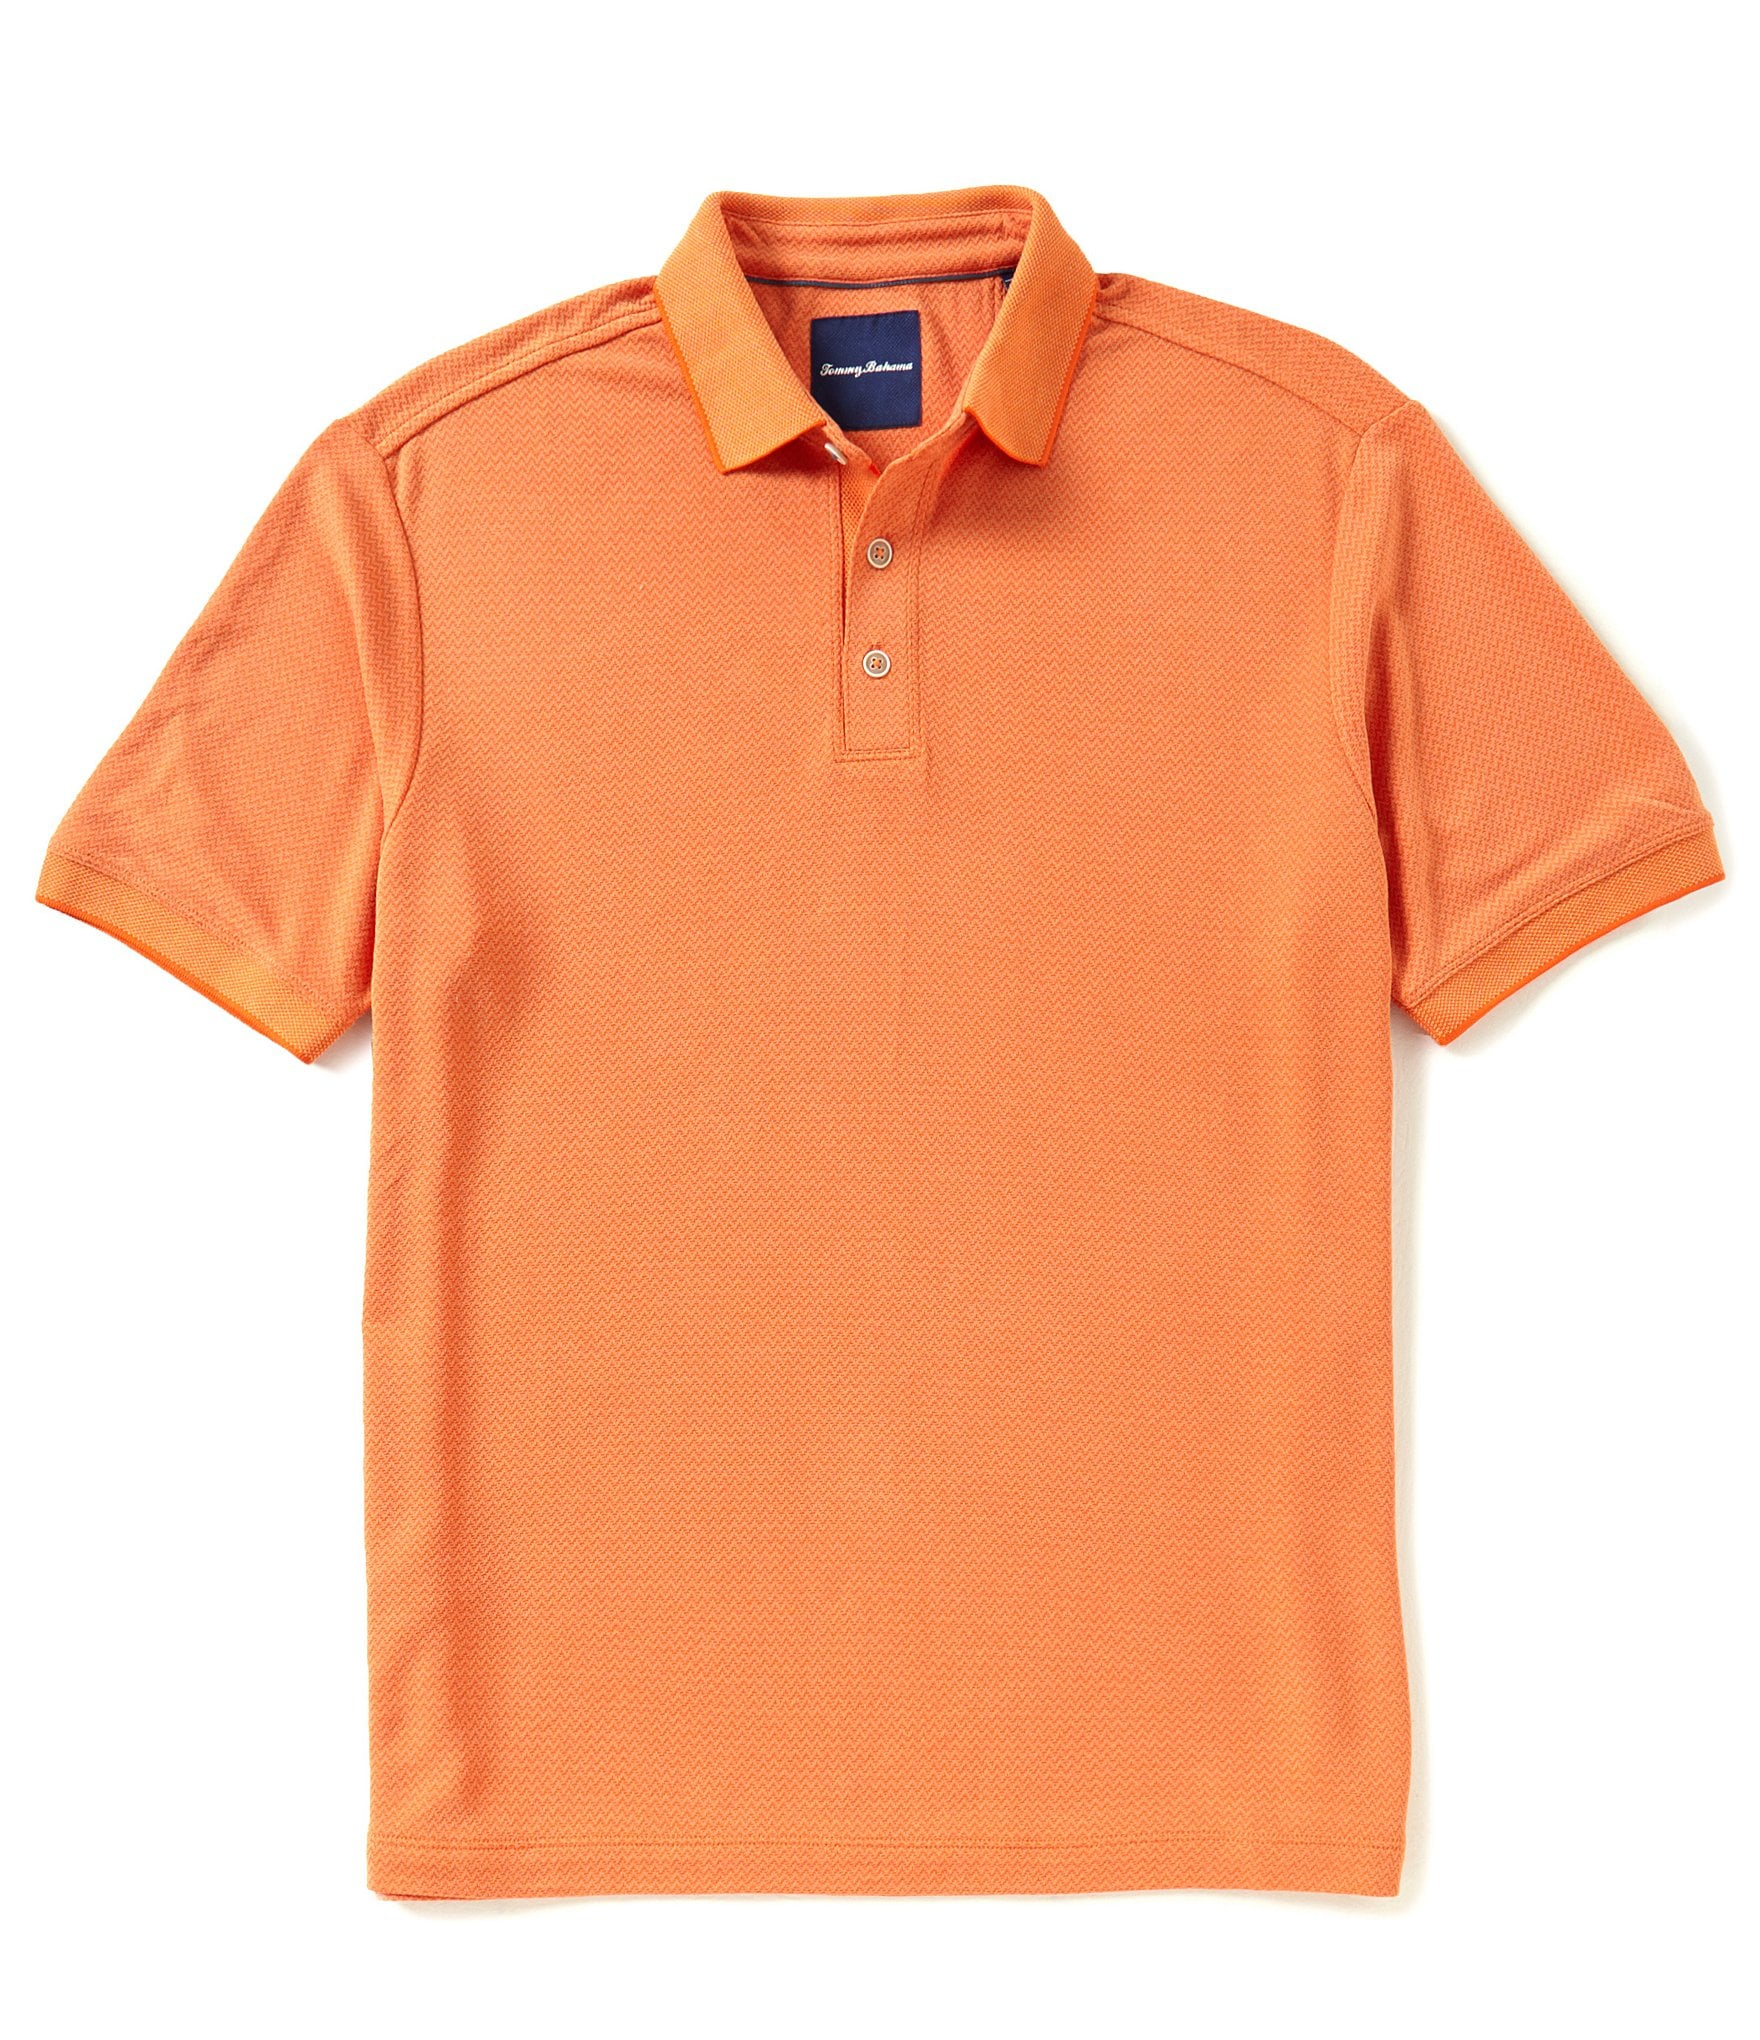 Tommy bahama short sleeve ocean view polo shirt dillards for Tommy bahama polo shirts on sale